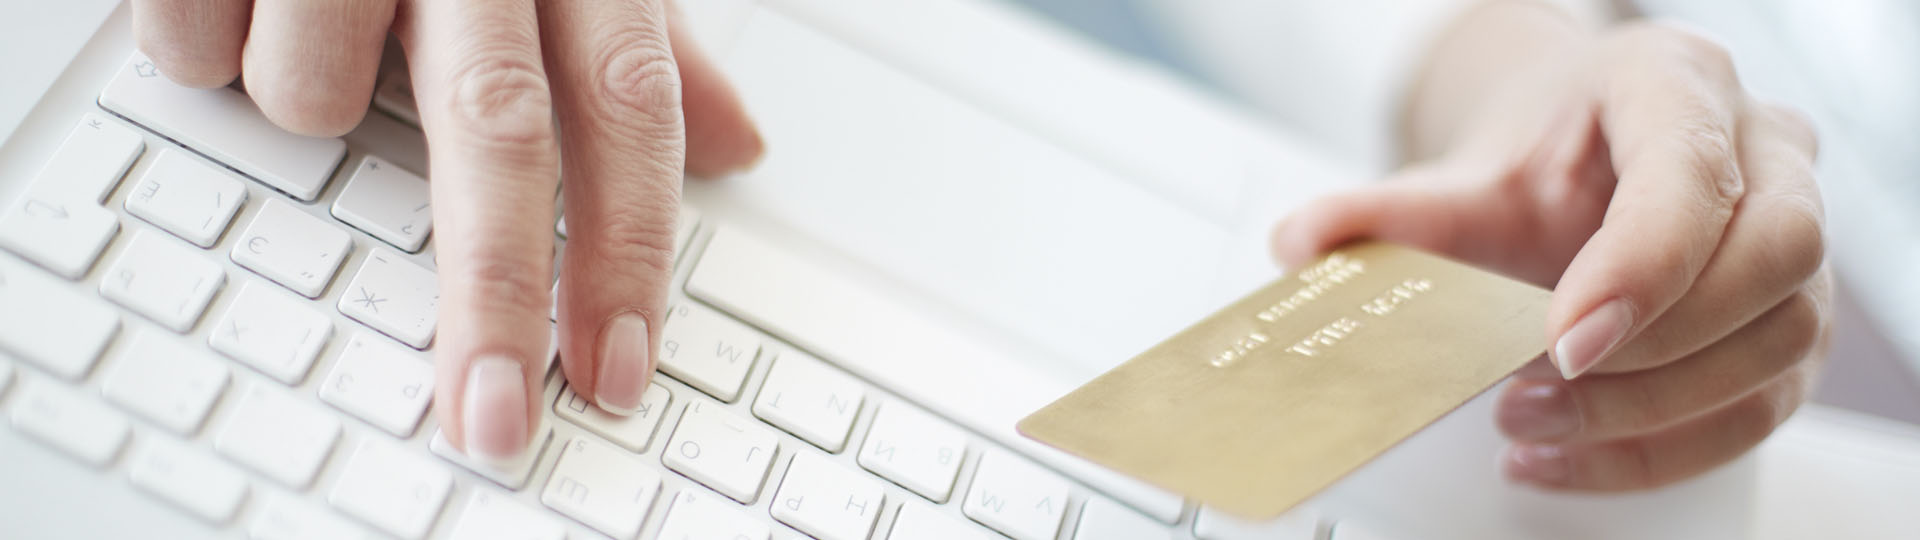 zoomed in image of a woman holding a credit card in one hand while pressing a keyboard button with the other